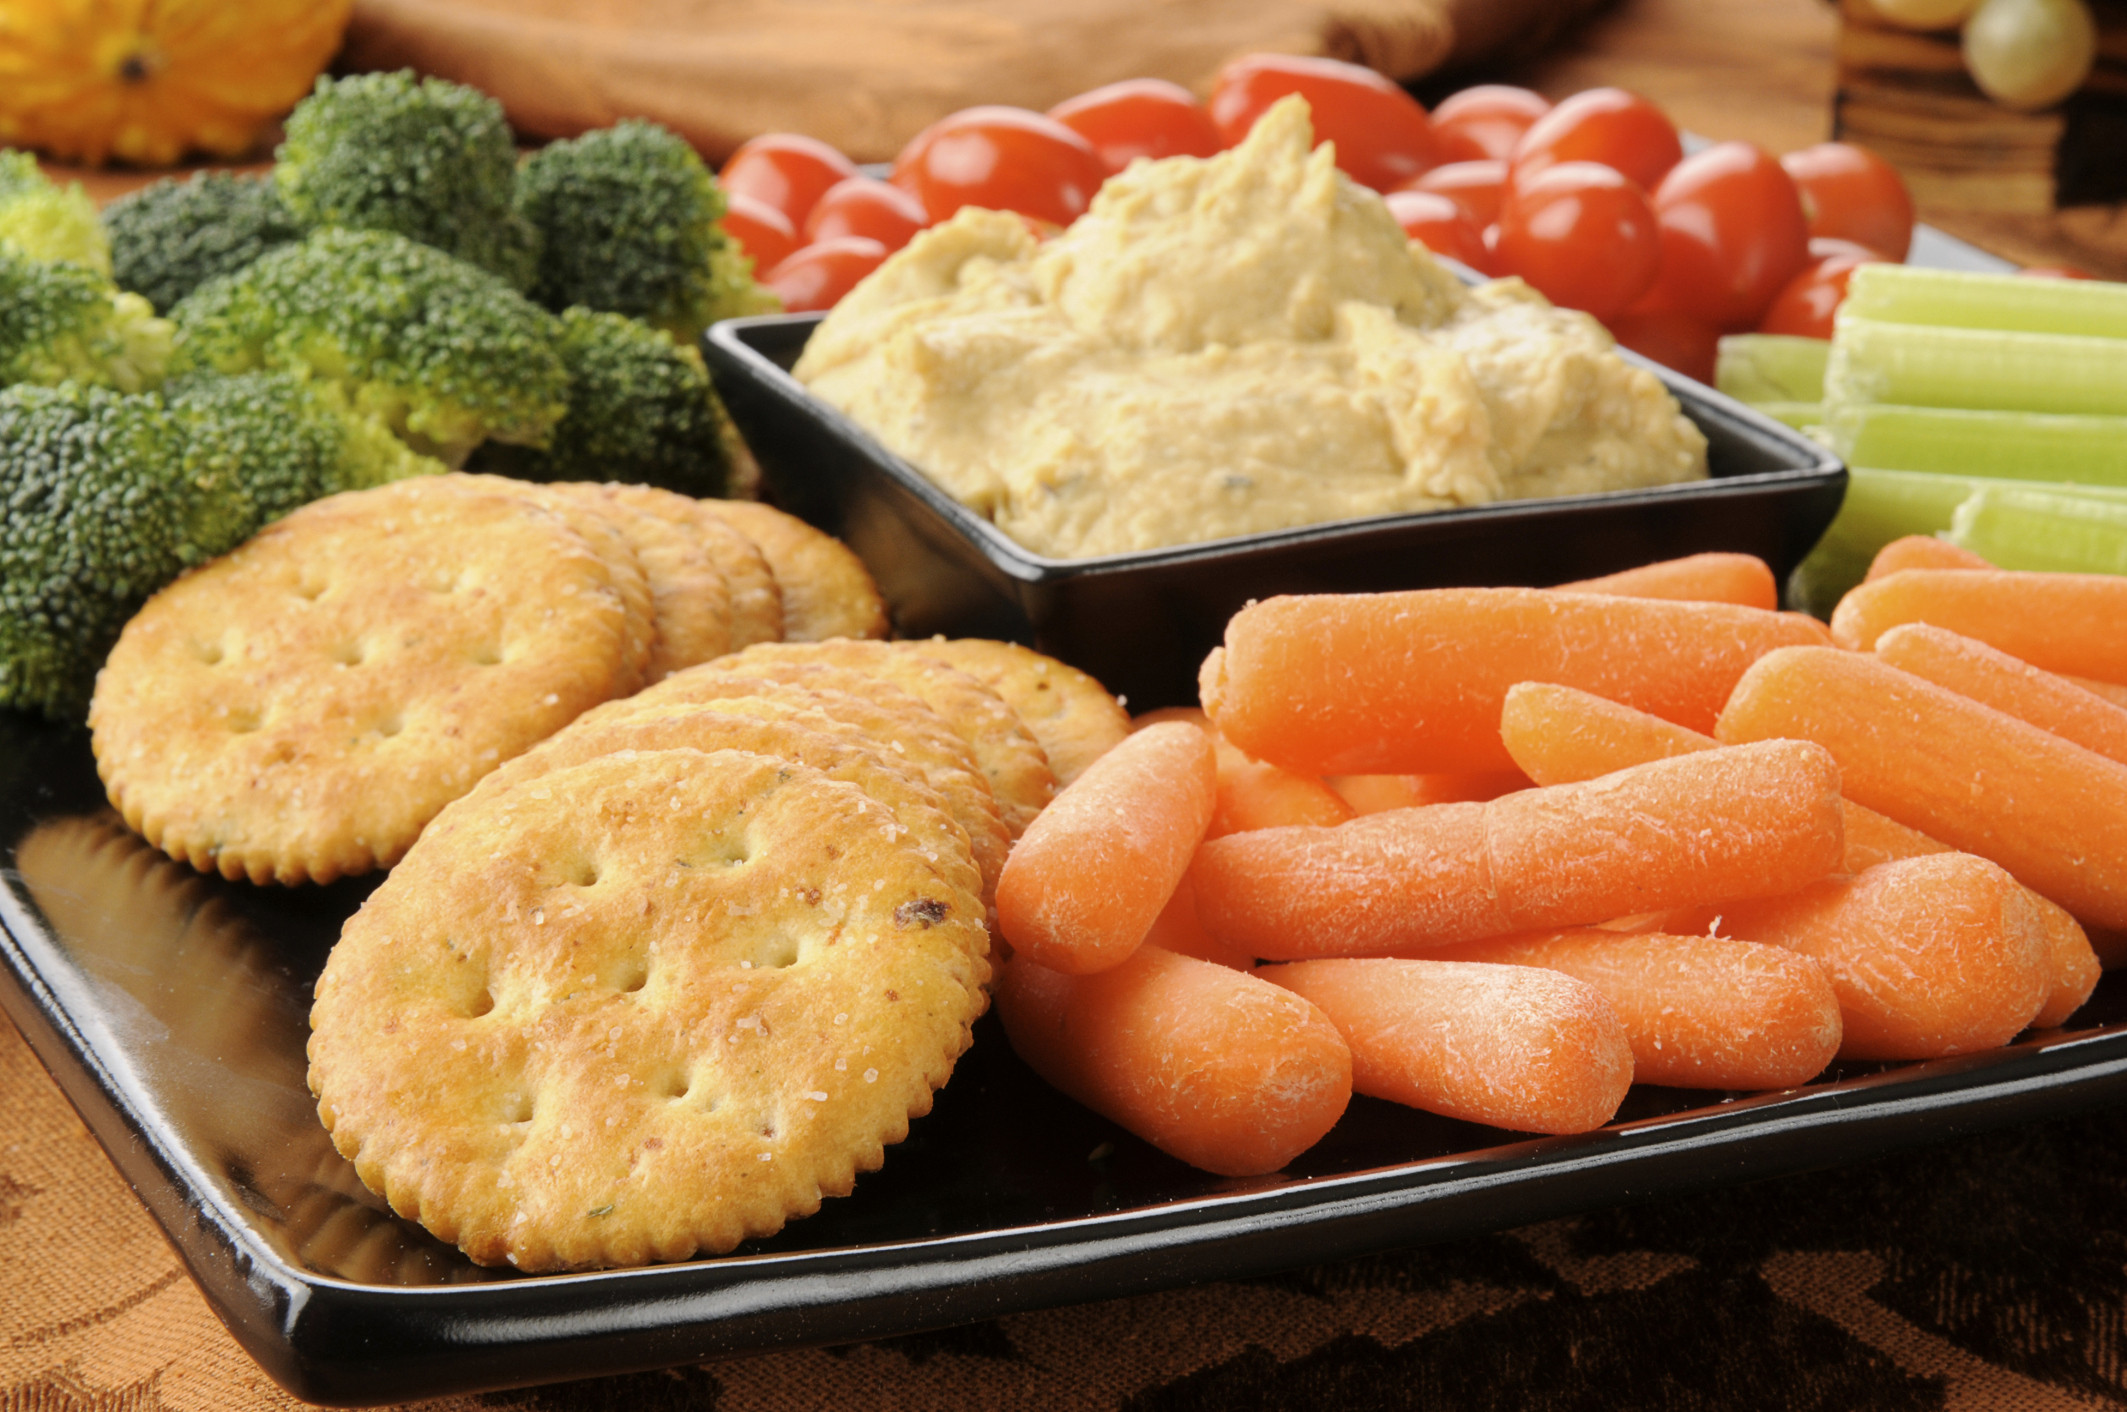 Healthy Snacks Images  LiveWell line Magazine